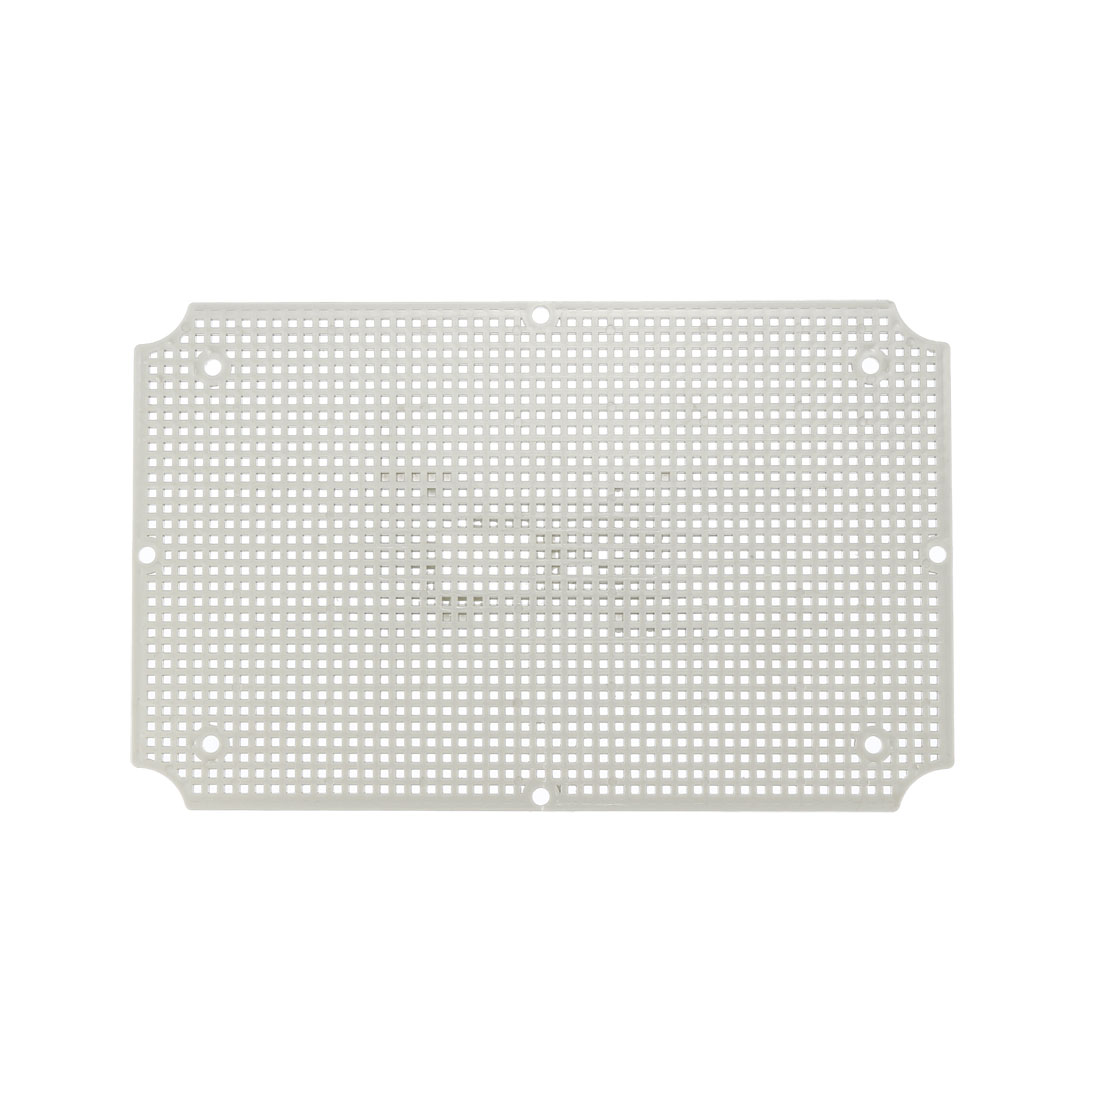 ABS Plastic Internal Panel Suitable for 290mm x 190mm Electrical Junction Box